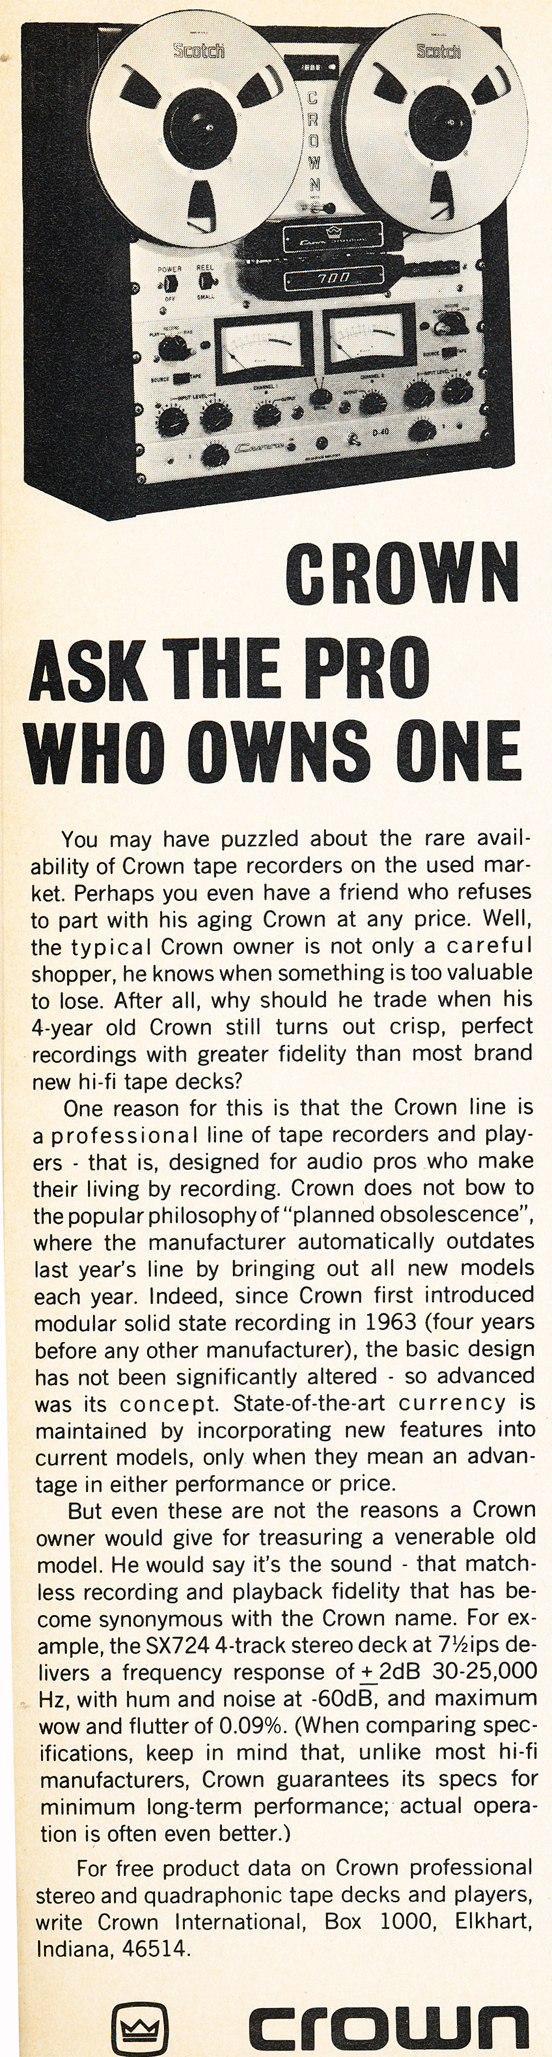 1973 Crown reel to reel tape recorder ad in the Reel2ReelTexas.com vintage recording collection